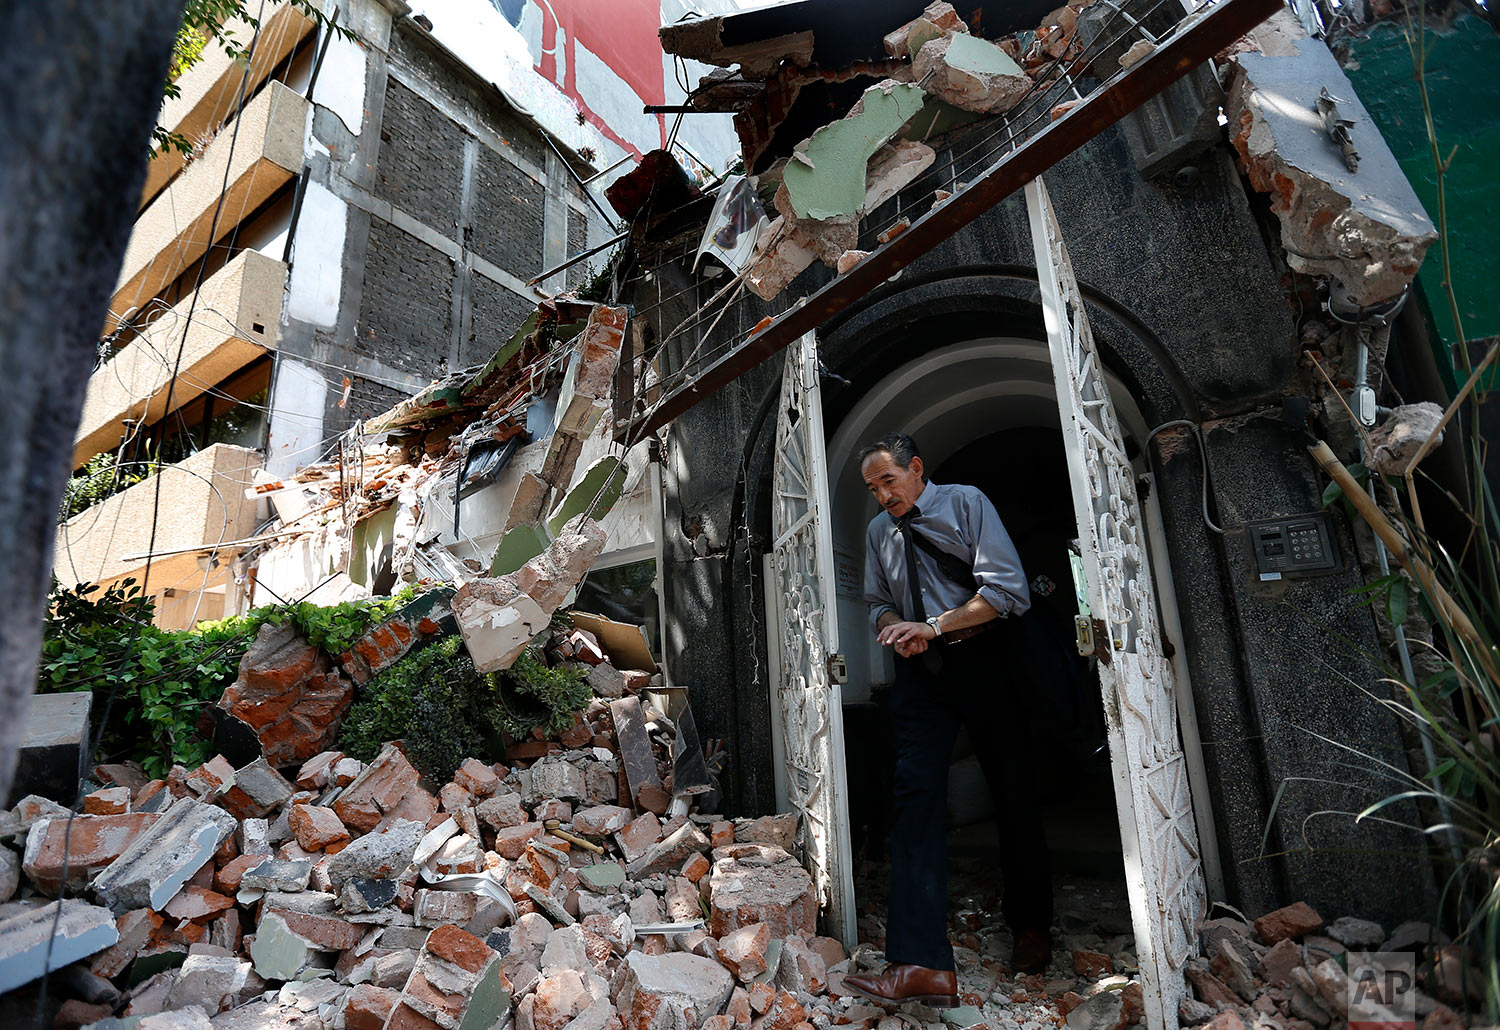 A man walks through a door in a building that collapsed during a 7.1 magnitude earthquake in the Condesa neighborhood of Mexico City, Tuesday, Sept. 19, 2017. (AP Photo/Marco Ugarte)